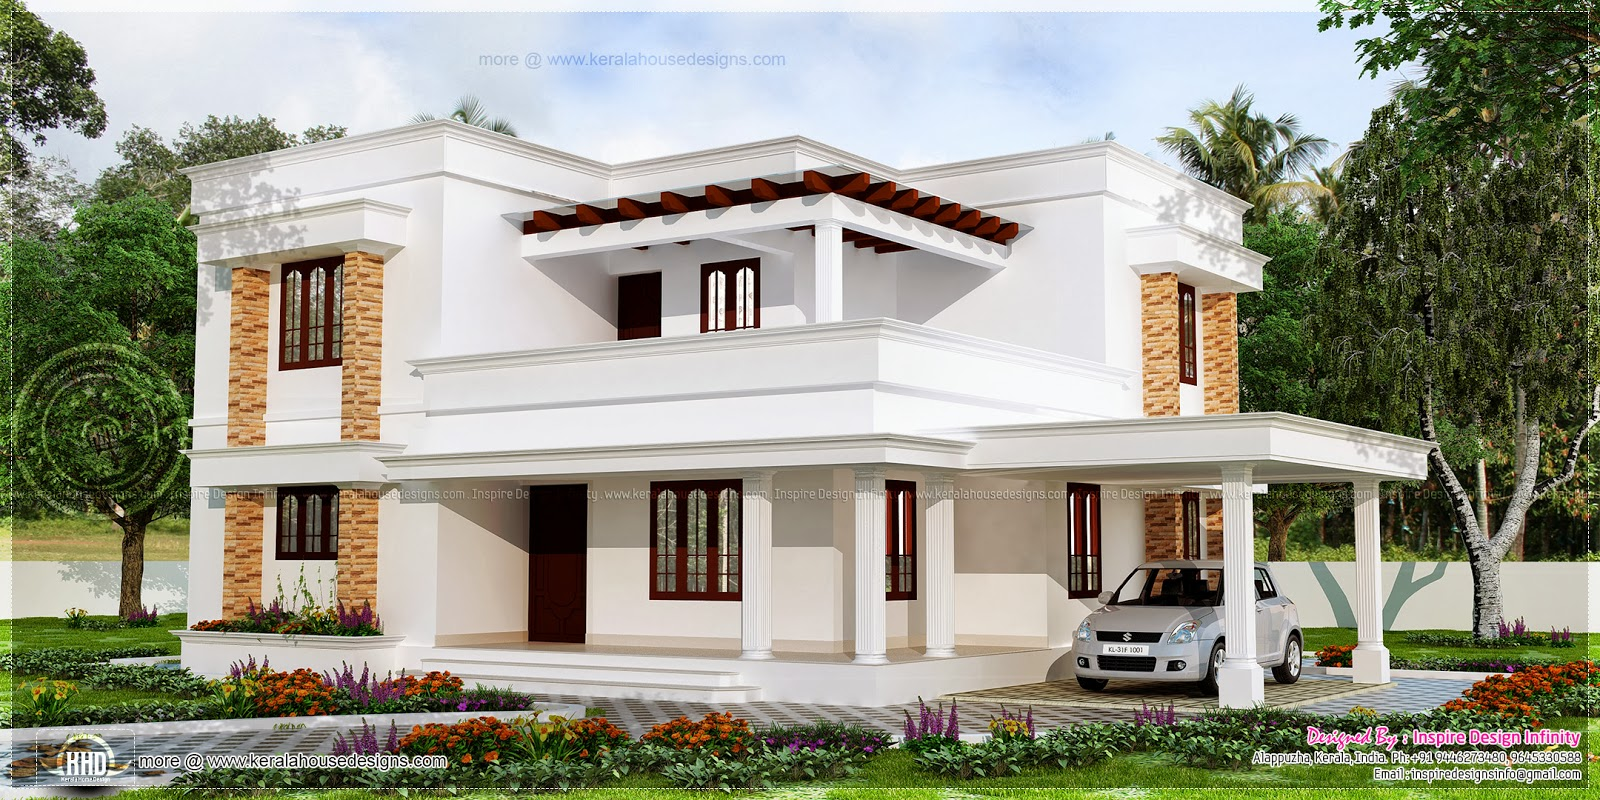 167 square meter flat roof white color house kerala home for Kerala home design flat roof elevation